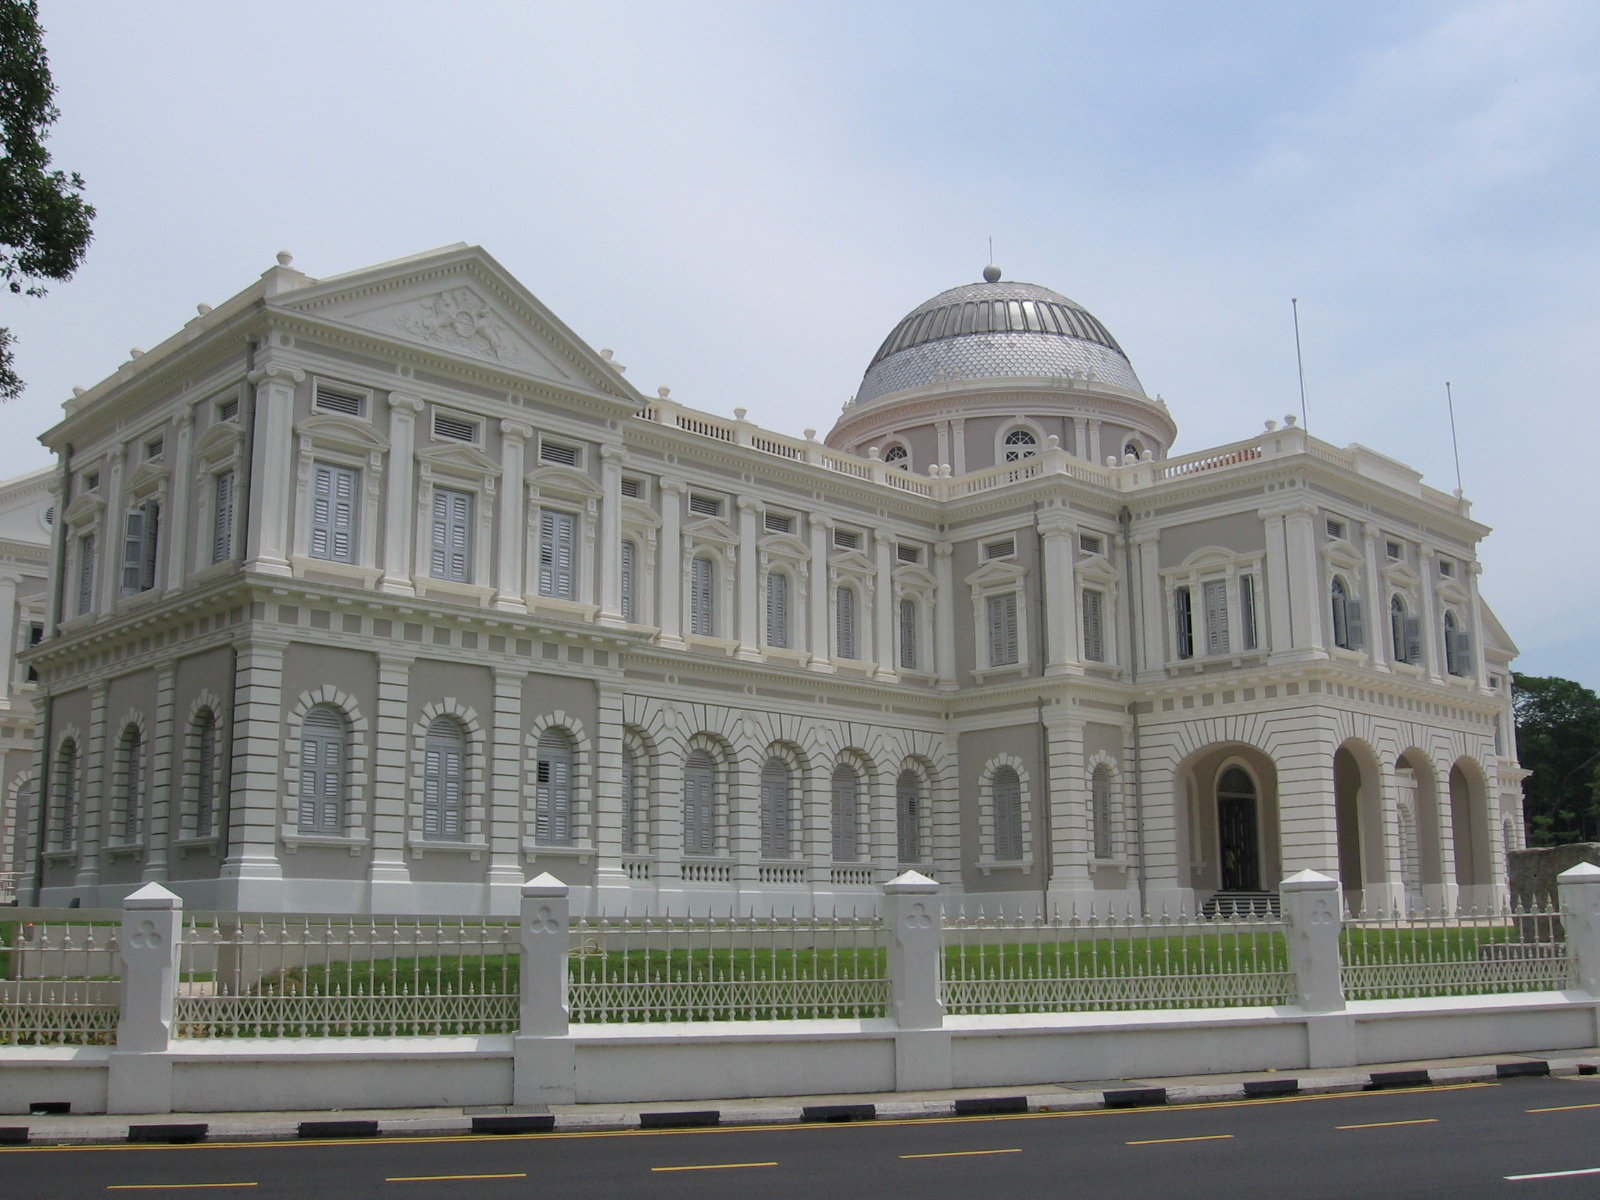 File:National Museum of Singapore 19, Aug 06.JPG - Wikimedia Commons